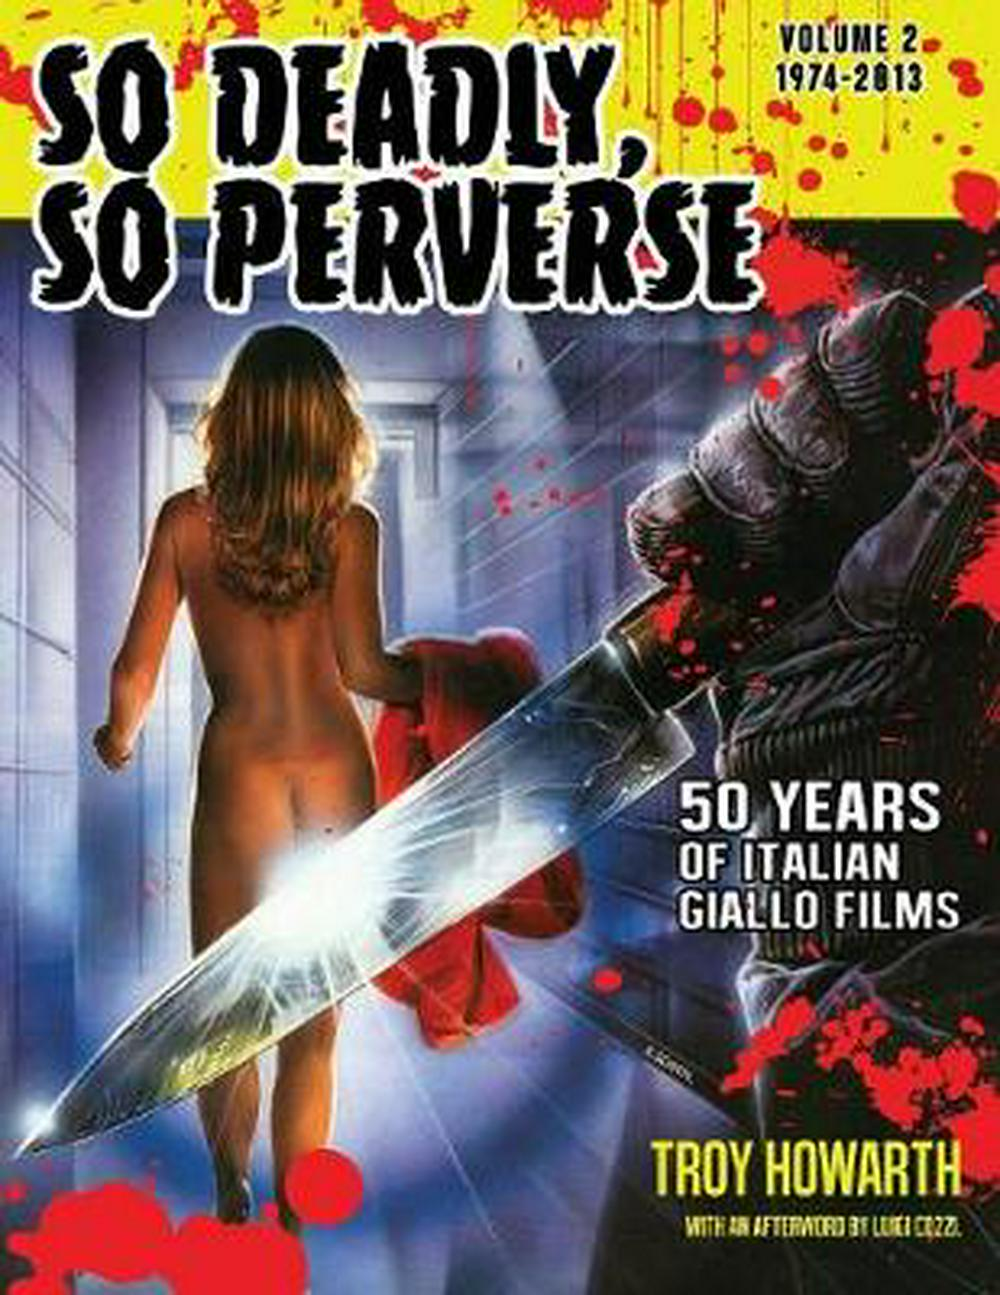 So Deadly So Perverse Volume 2 50 Years Italian Giallo Films Vol 2 1974 2013